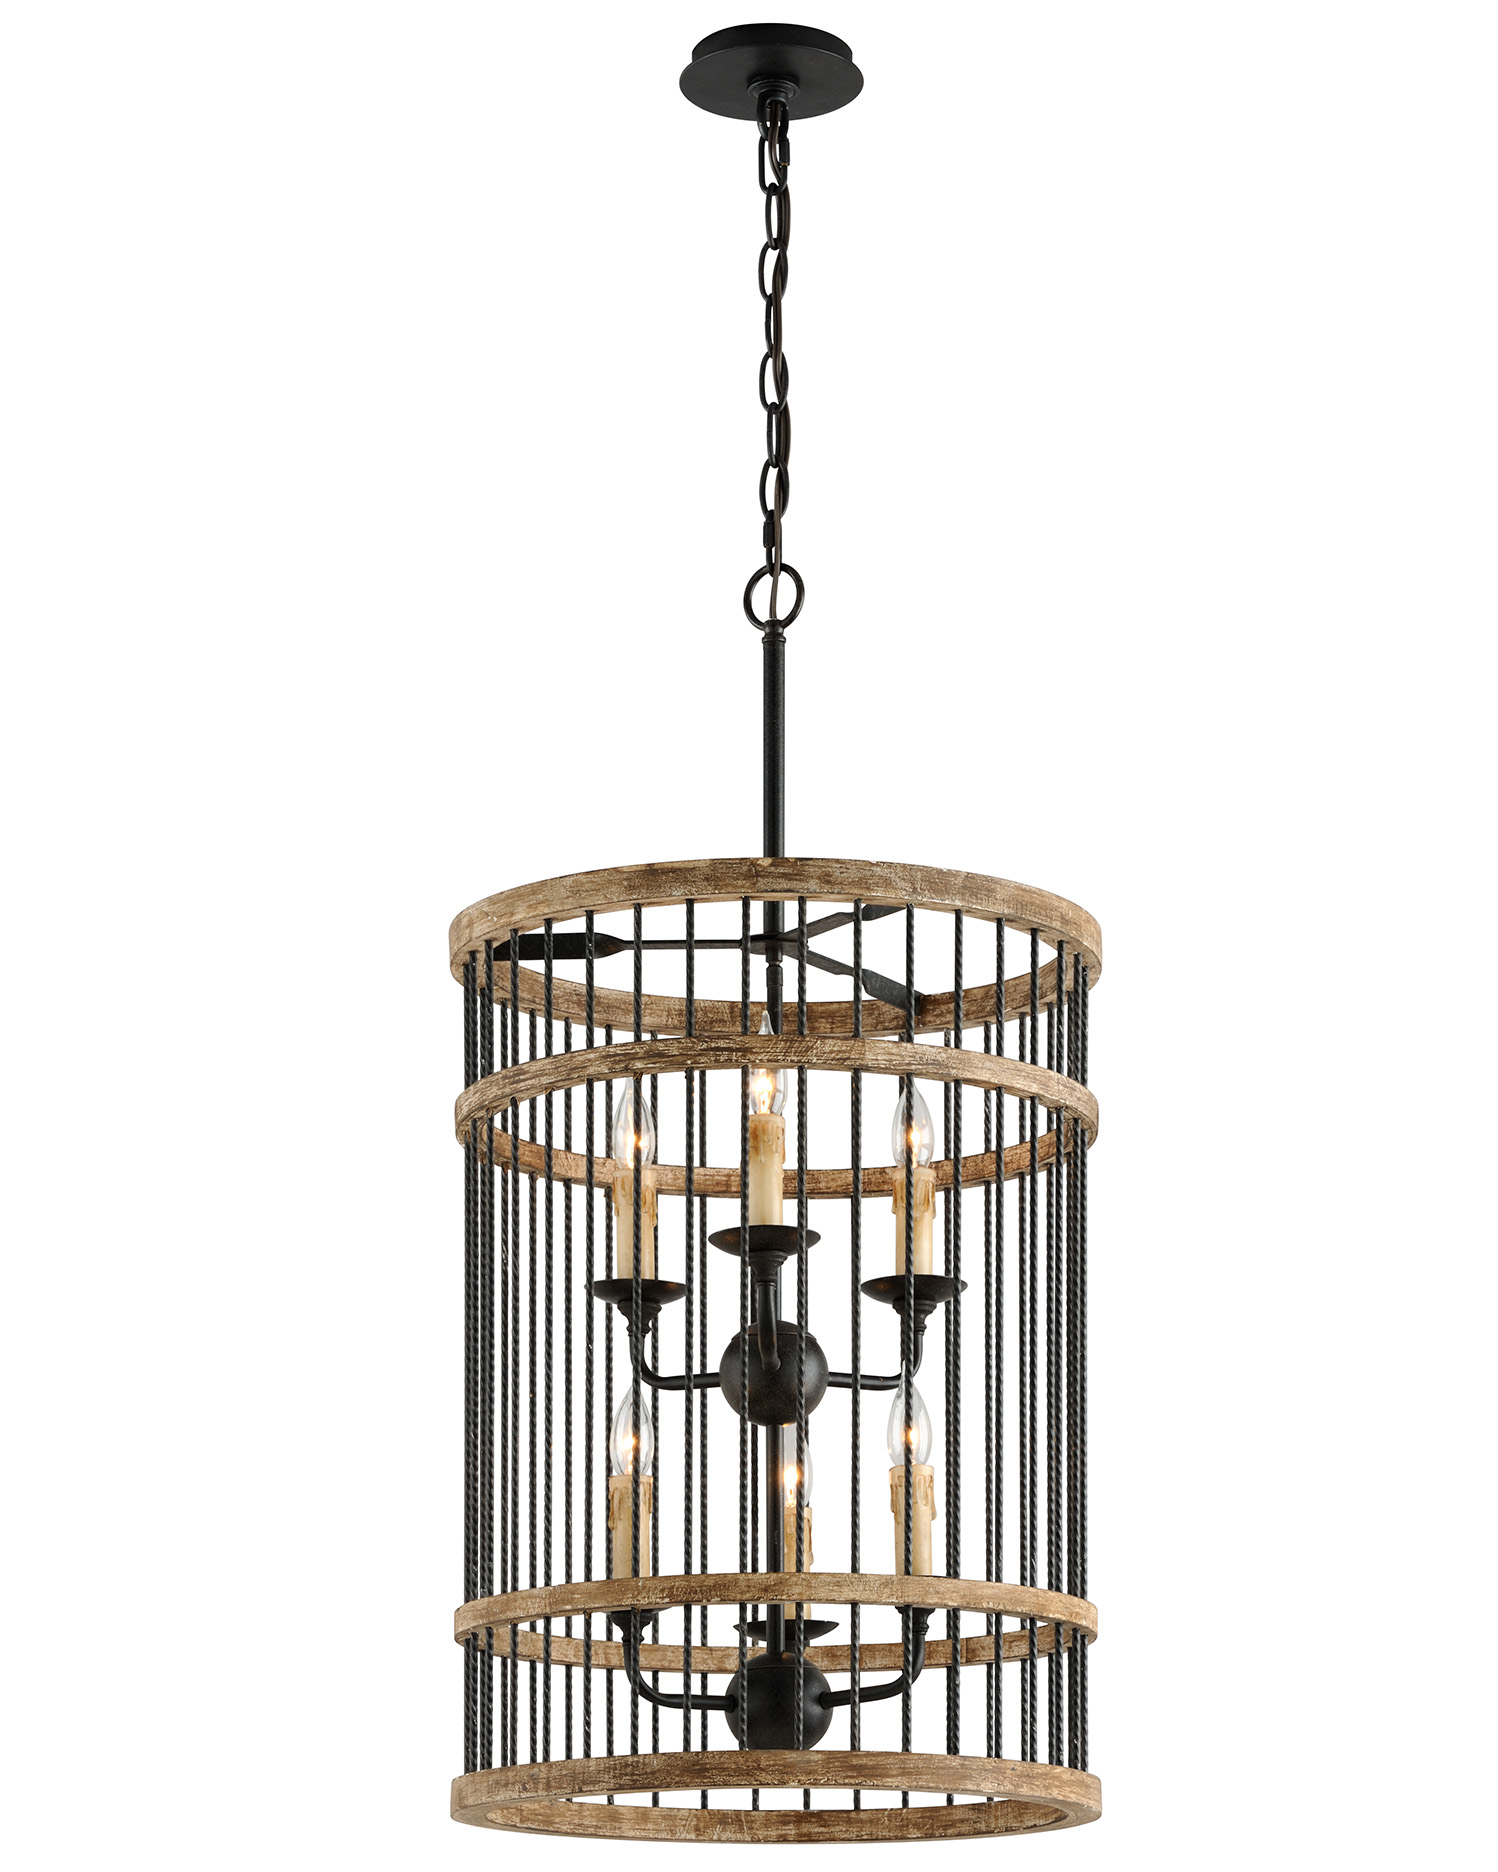 The cylindrical pendant is comprised of solid, twisted handcrafted iron rods.